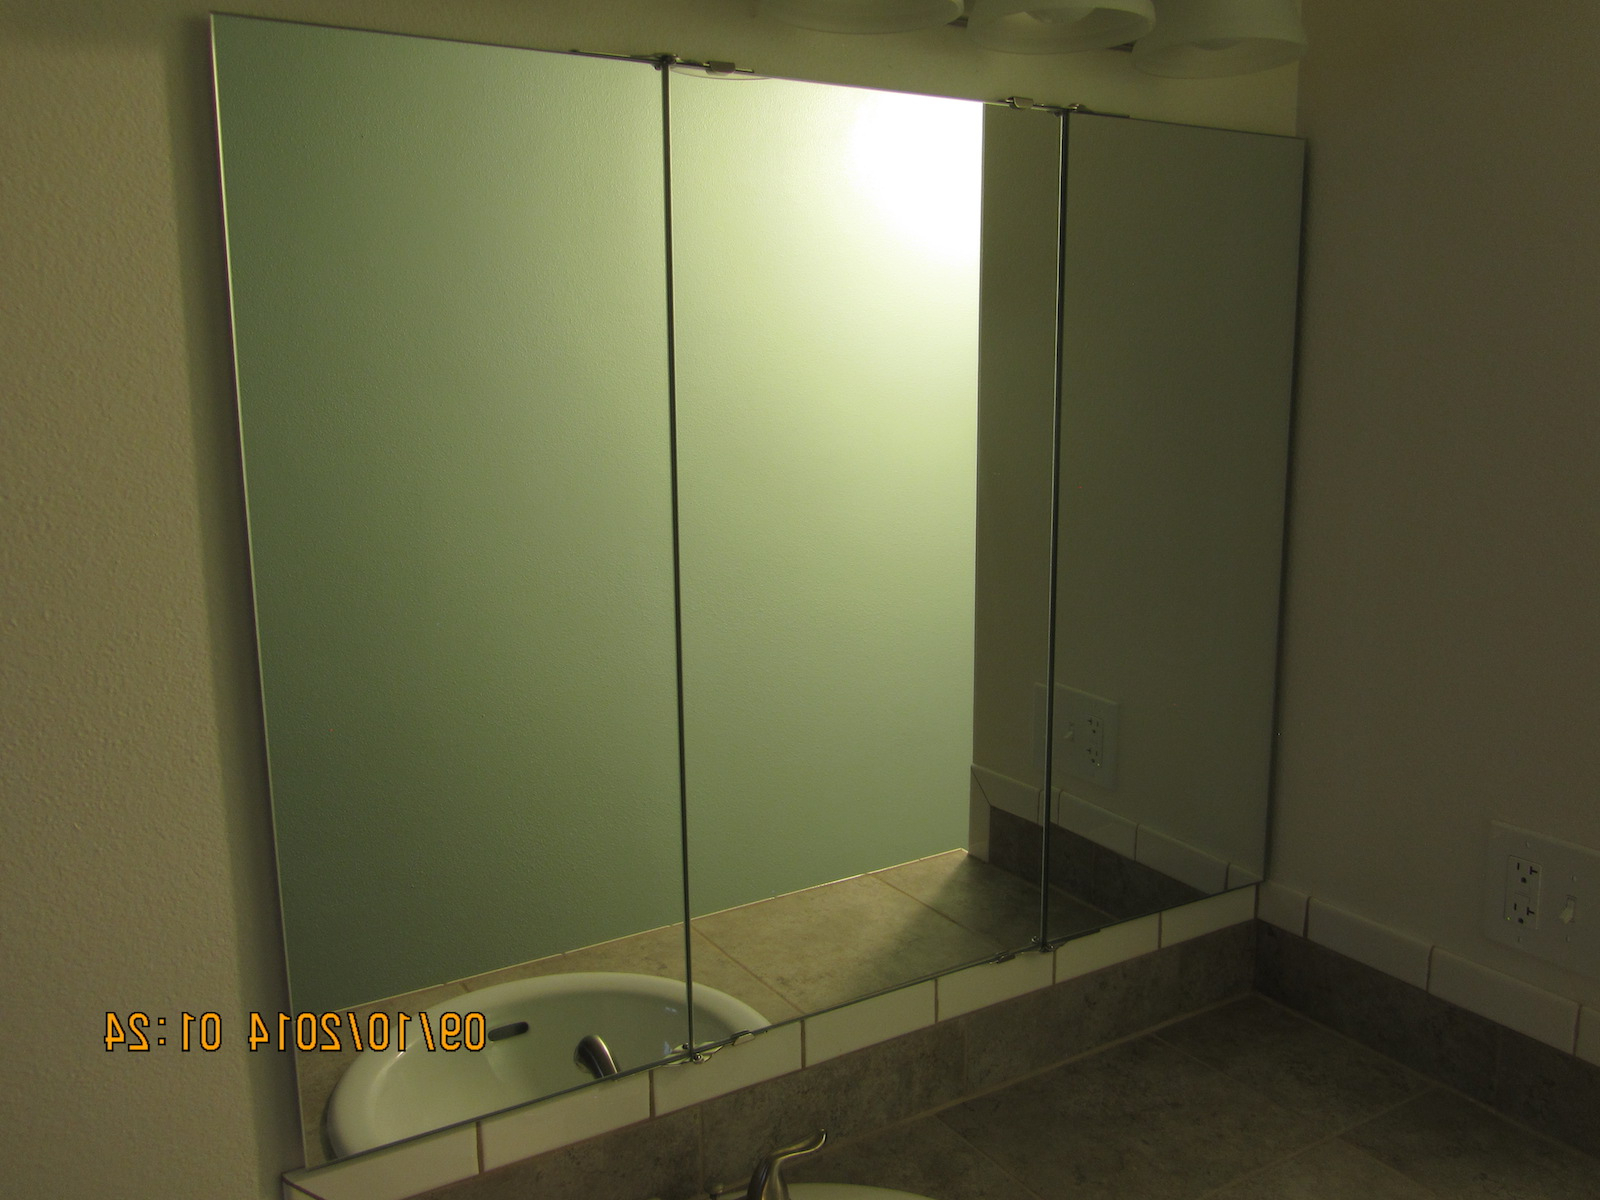 Trifold Vanity And Wardrobe Mirrors In Most Recently Released Tri Fold Bathroom Wall Mirrors (View 18 of 20)